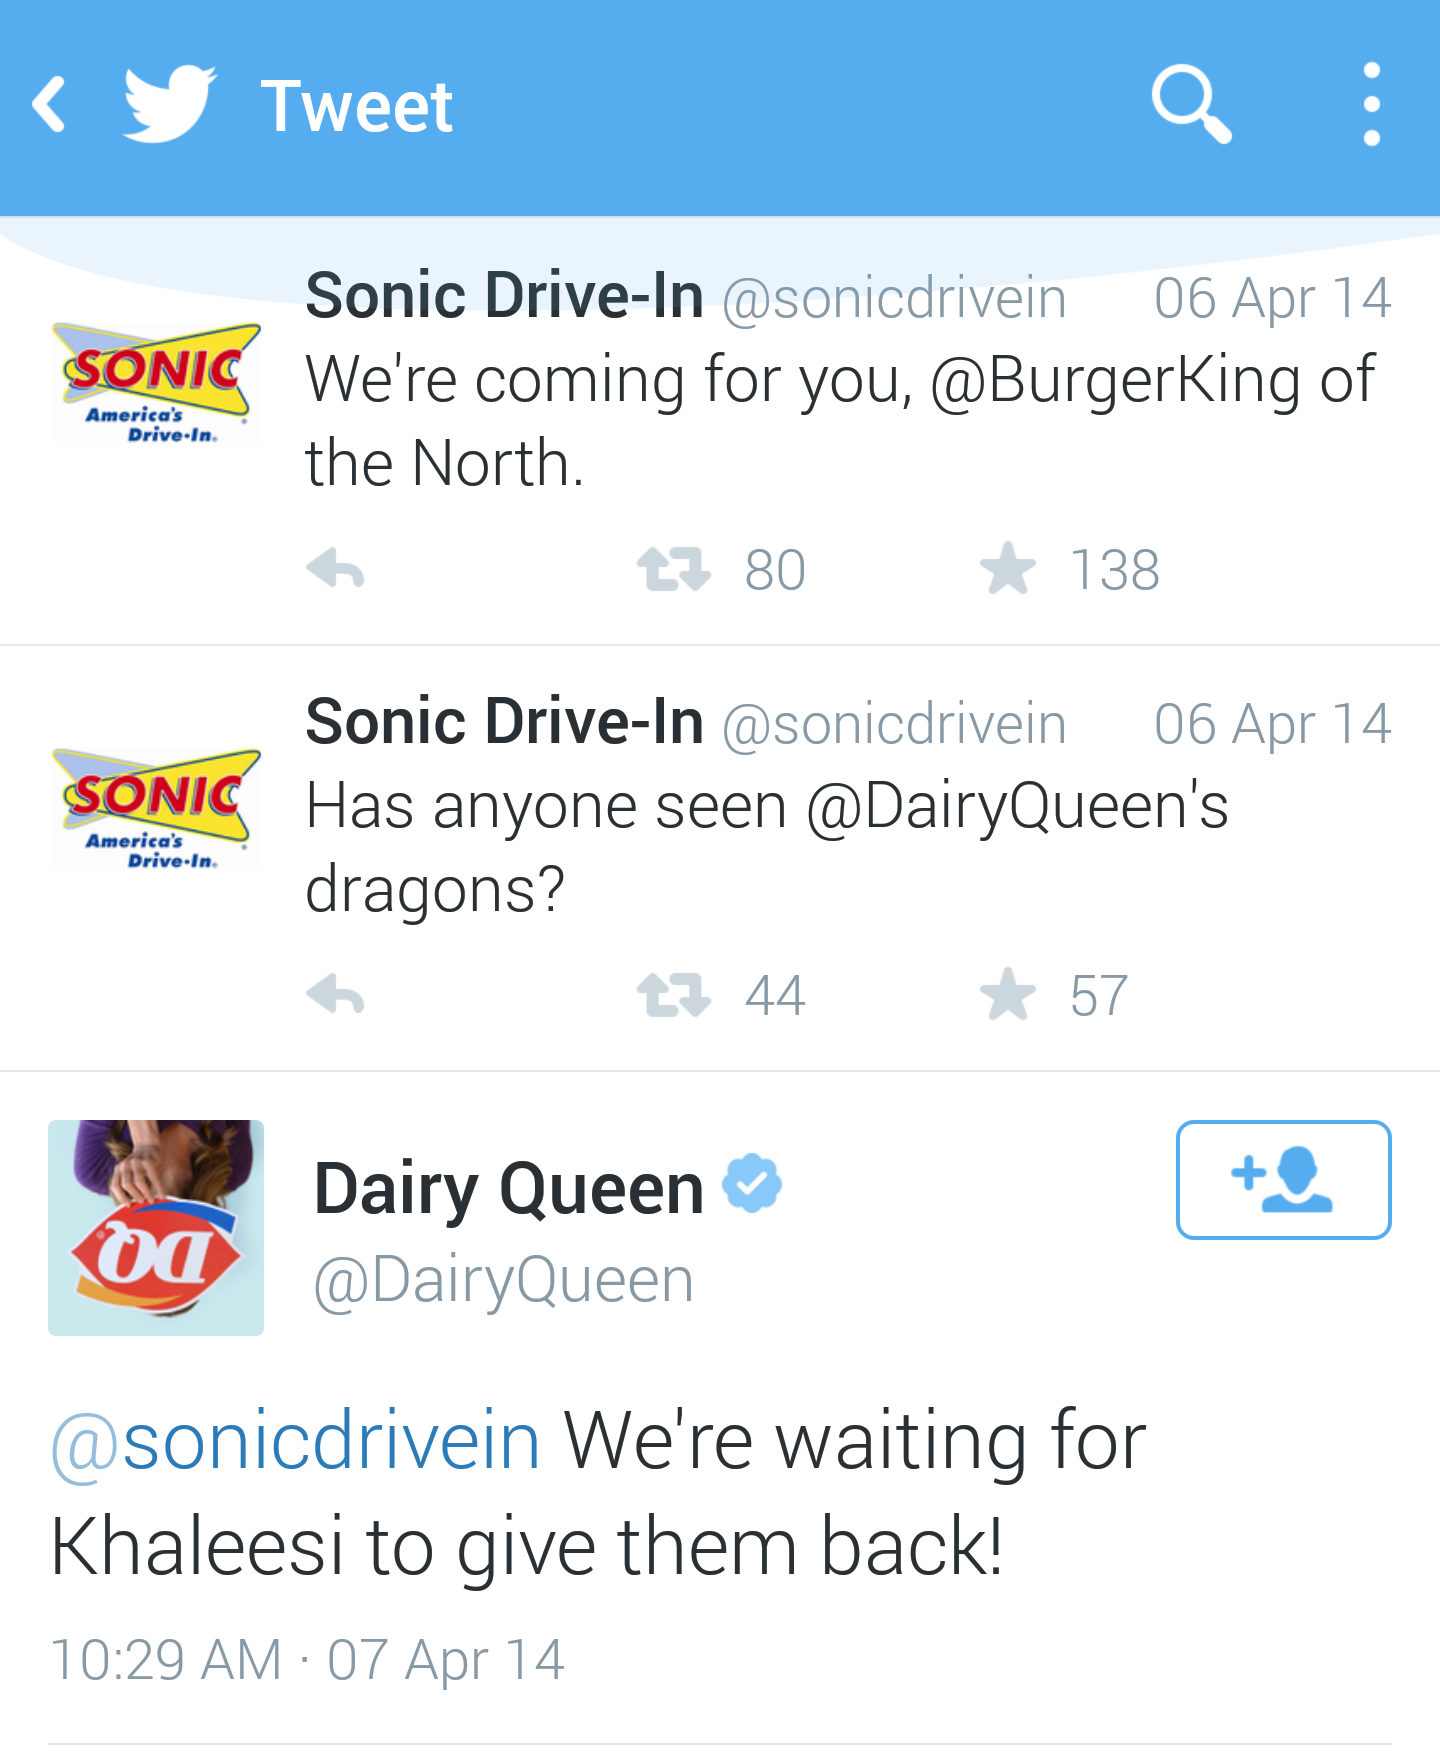 OK, a little lame on Dairy Queen's part, but they responded!